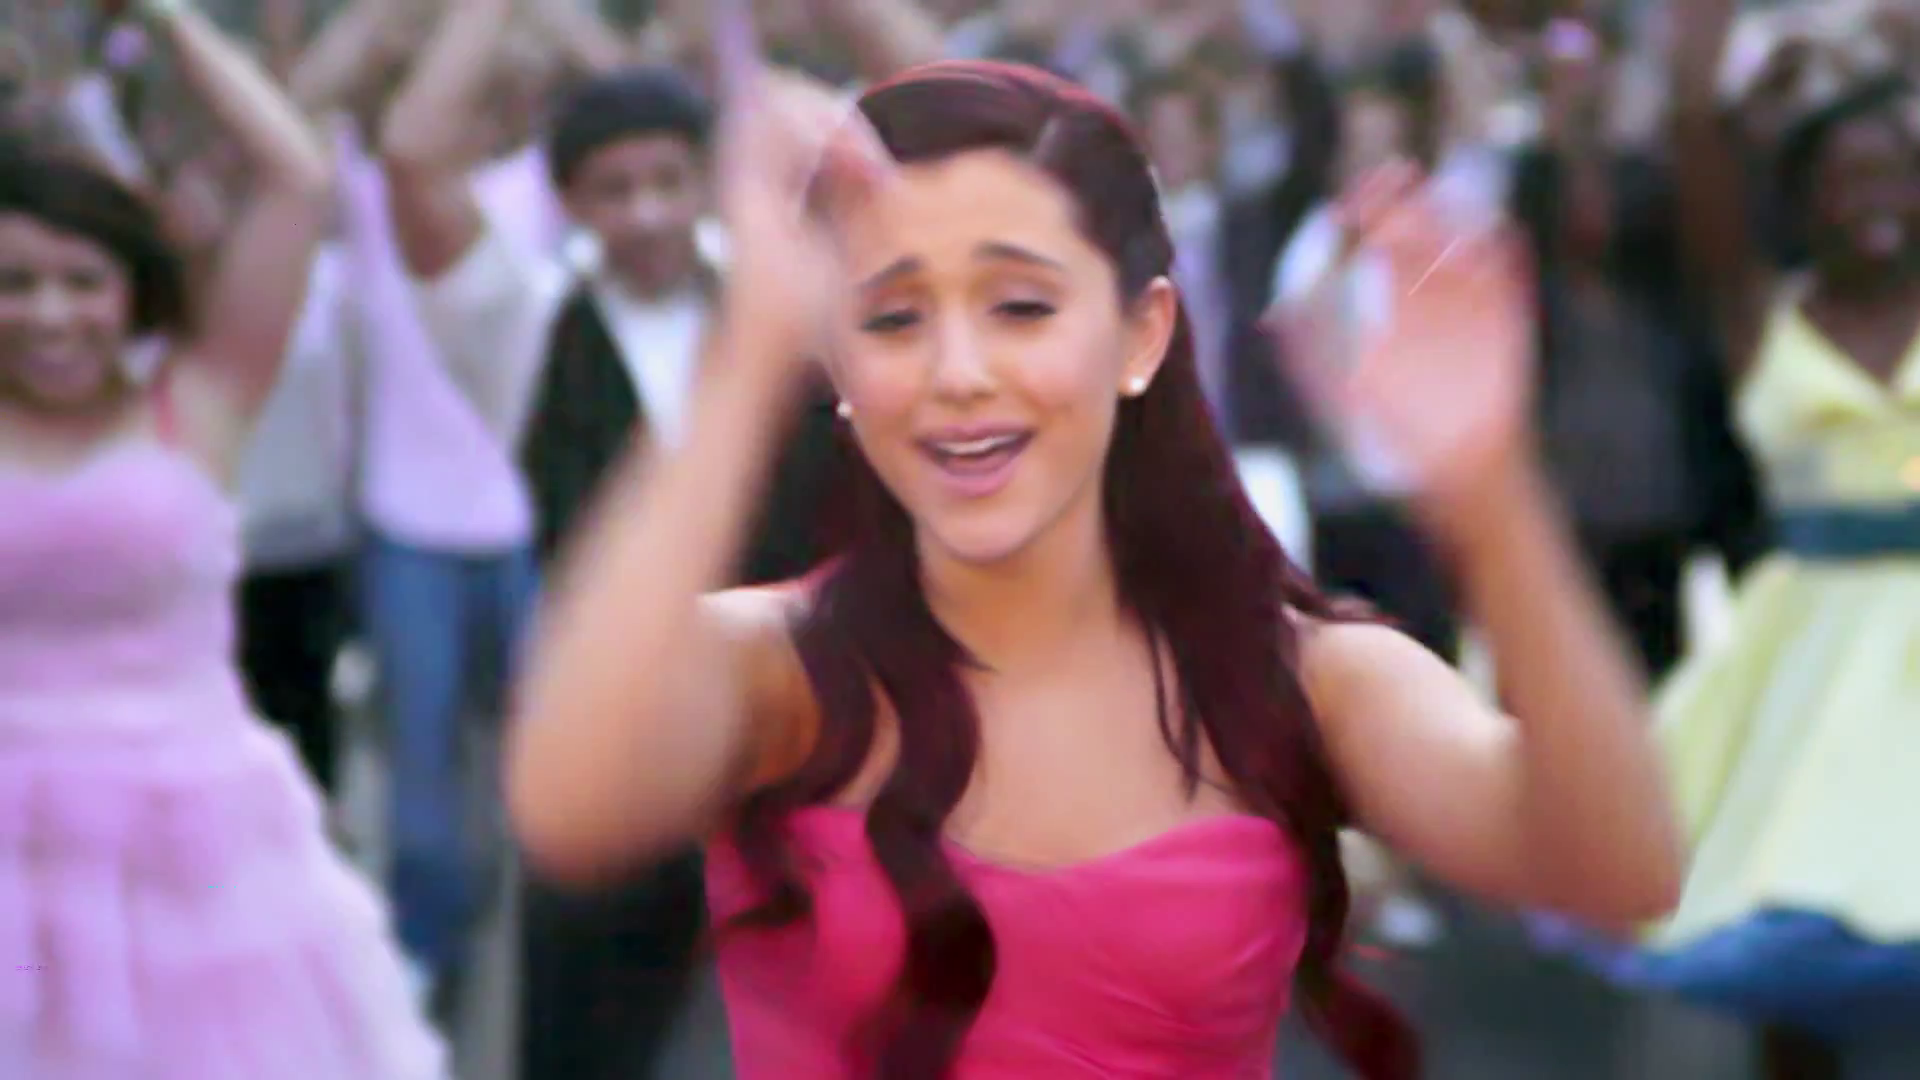 PUT YOUR HEARTS UP ARIANA GRANDE